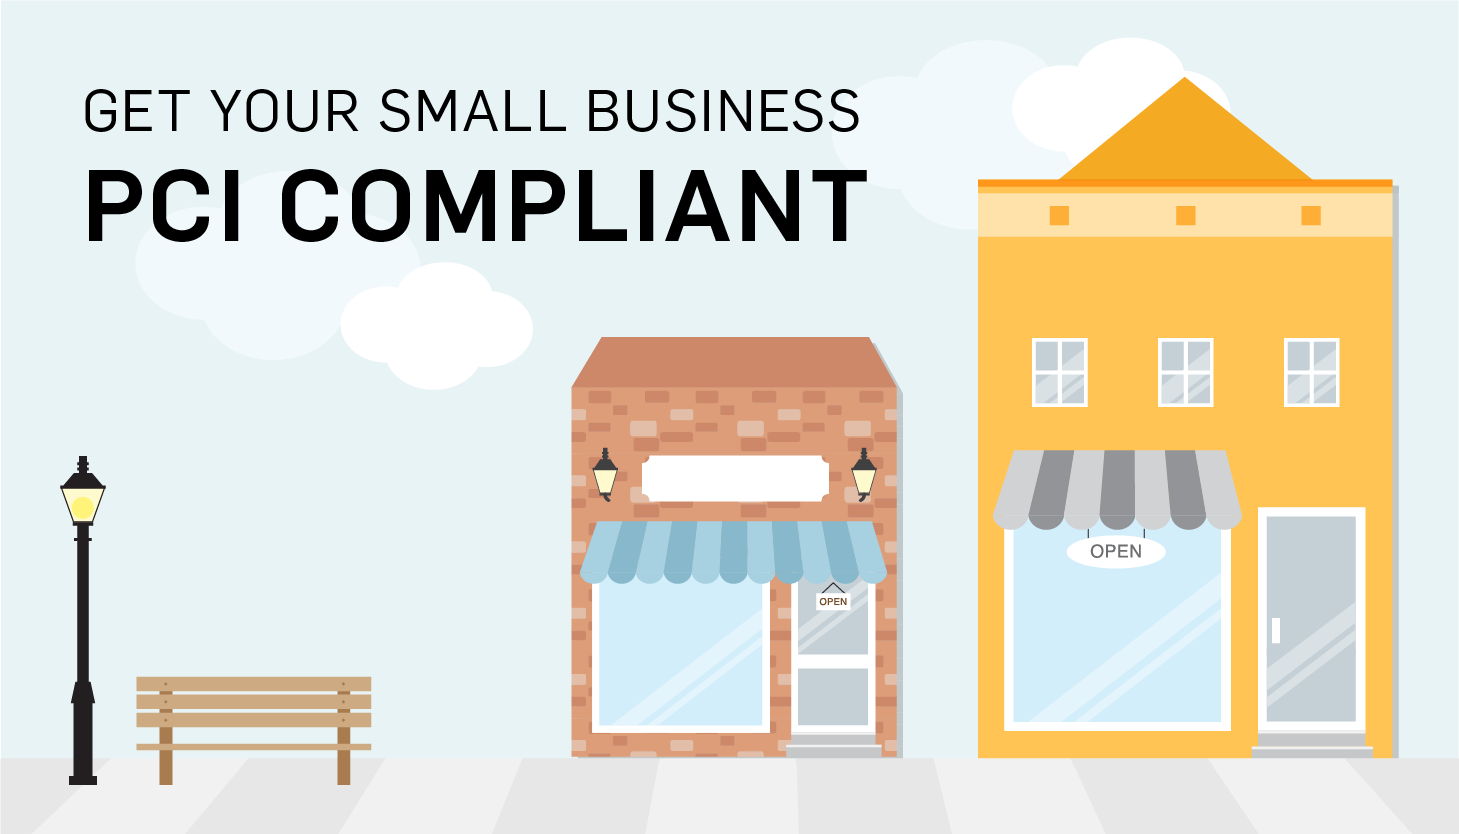 Smaller businesses are often less likely to consistently follow established policies and procedures since they only have a handful of systems and few